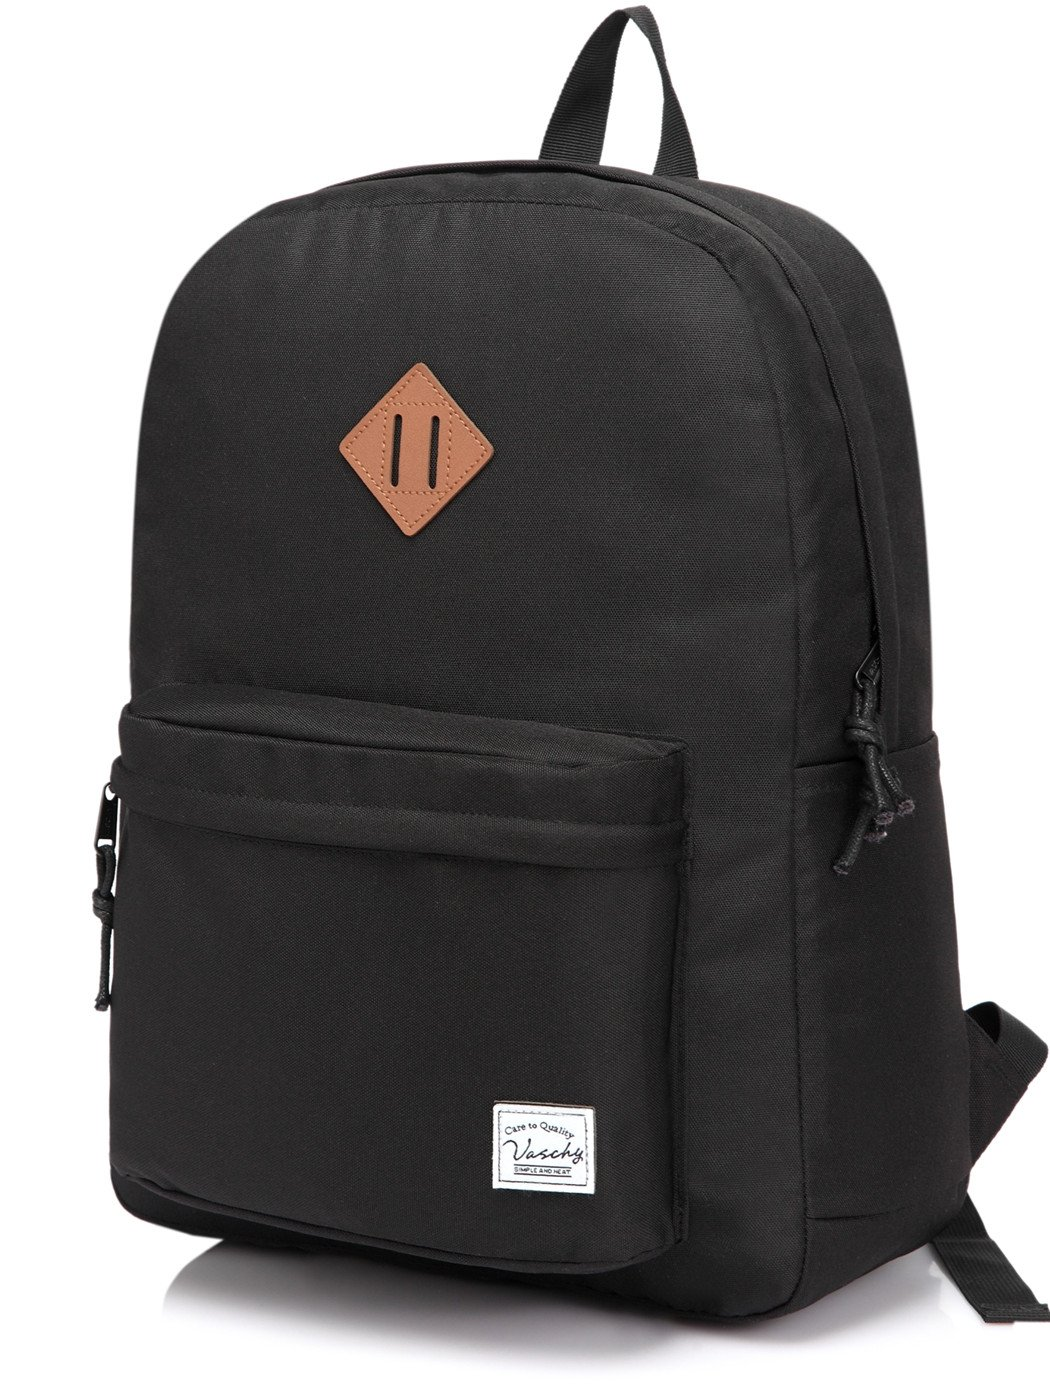 VASCHY Lightweight Backpack for School, Classic Basic Water Resistant Casual Daypack for Travel with Bottle Side Pockets